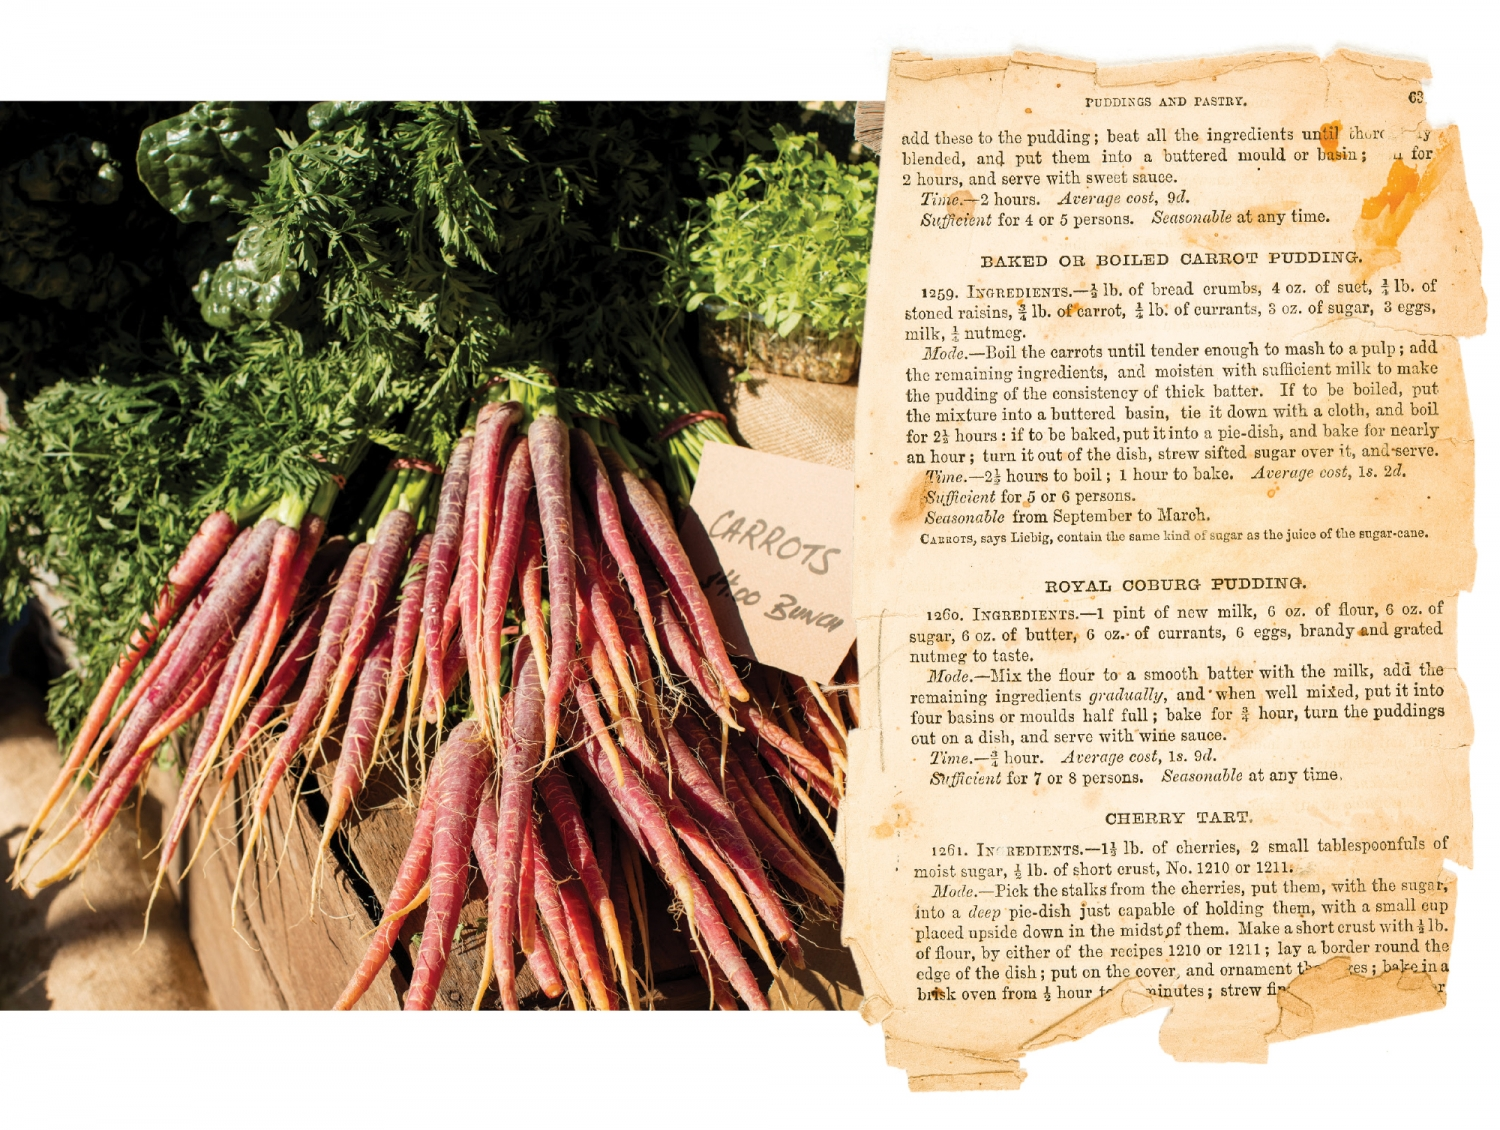 Photo of carrots overlaid with page from recipe book.